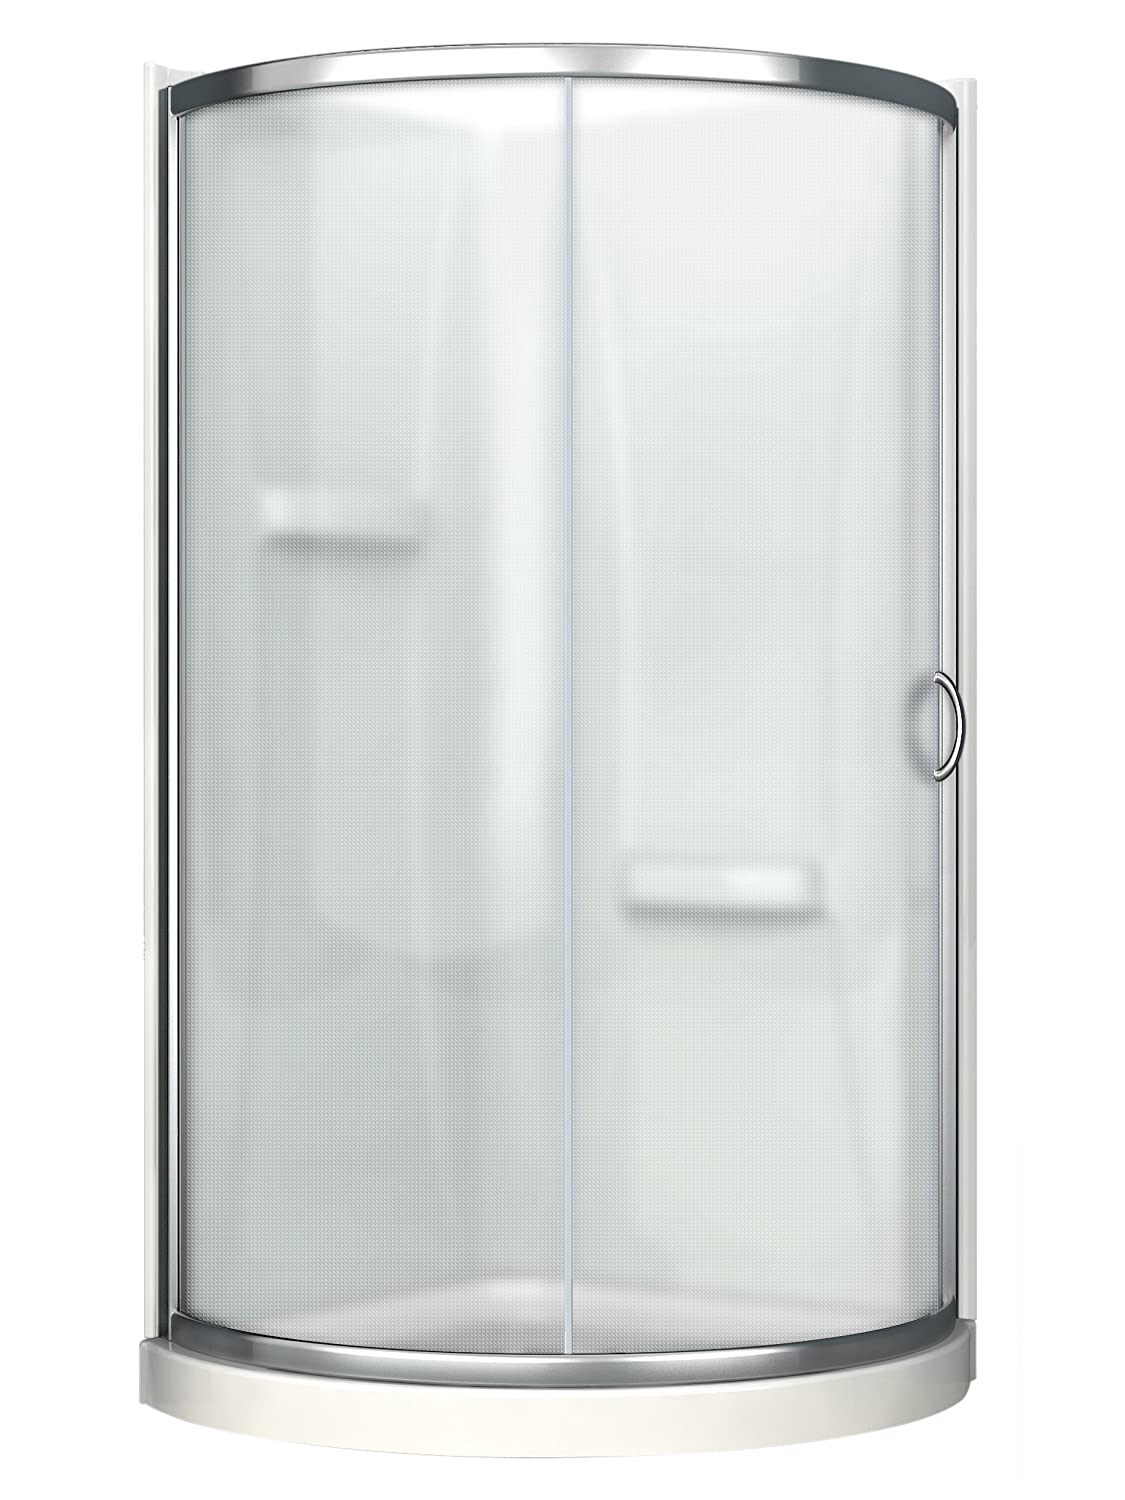 Ove Decors Breeze 31 Shower Kit Paris Glass with Walls and Base ...